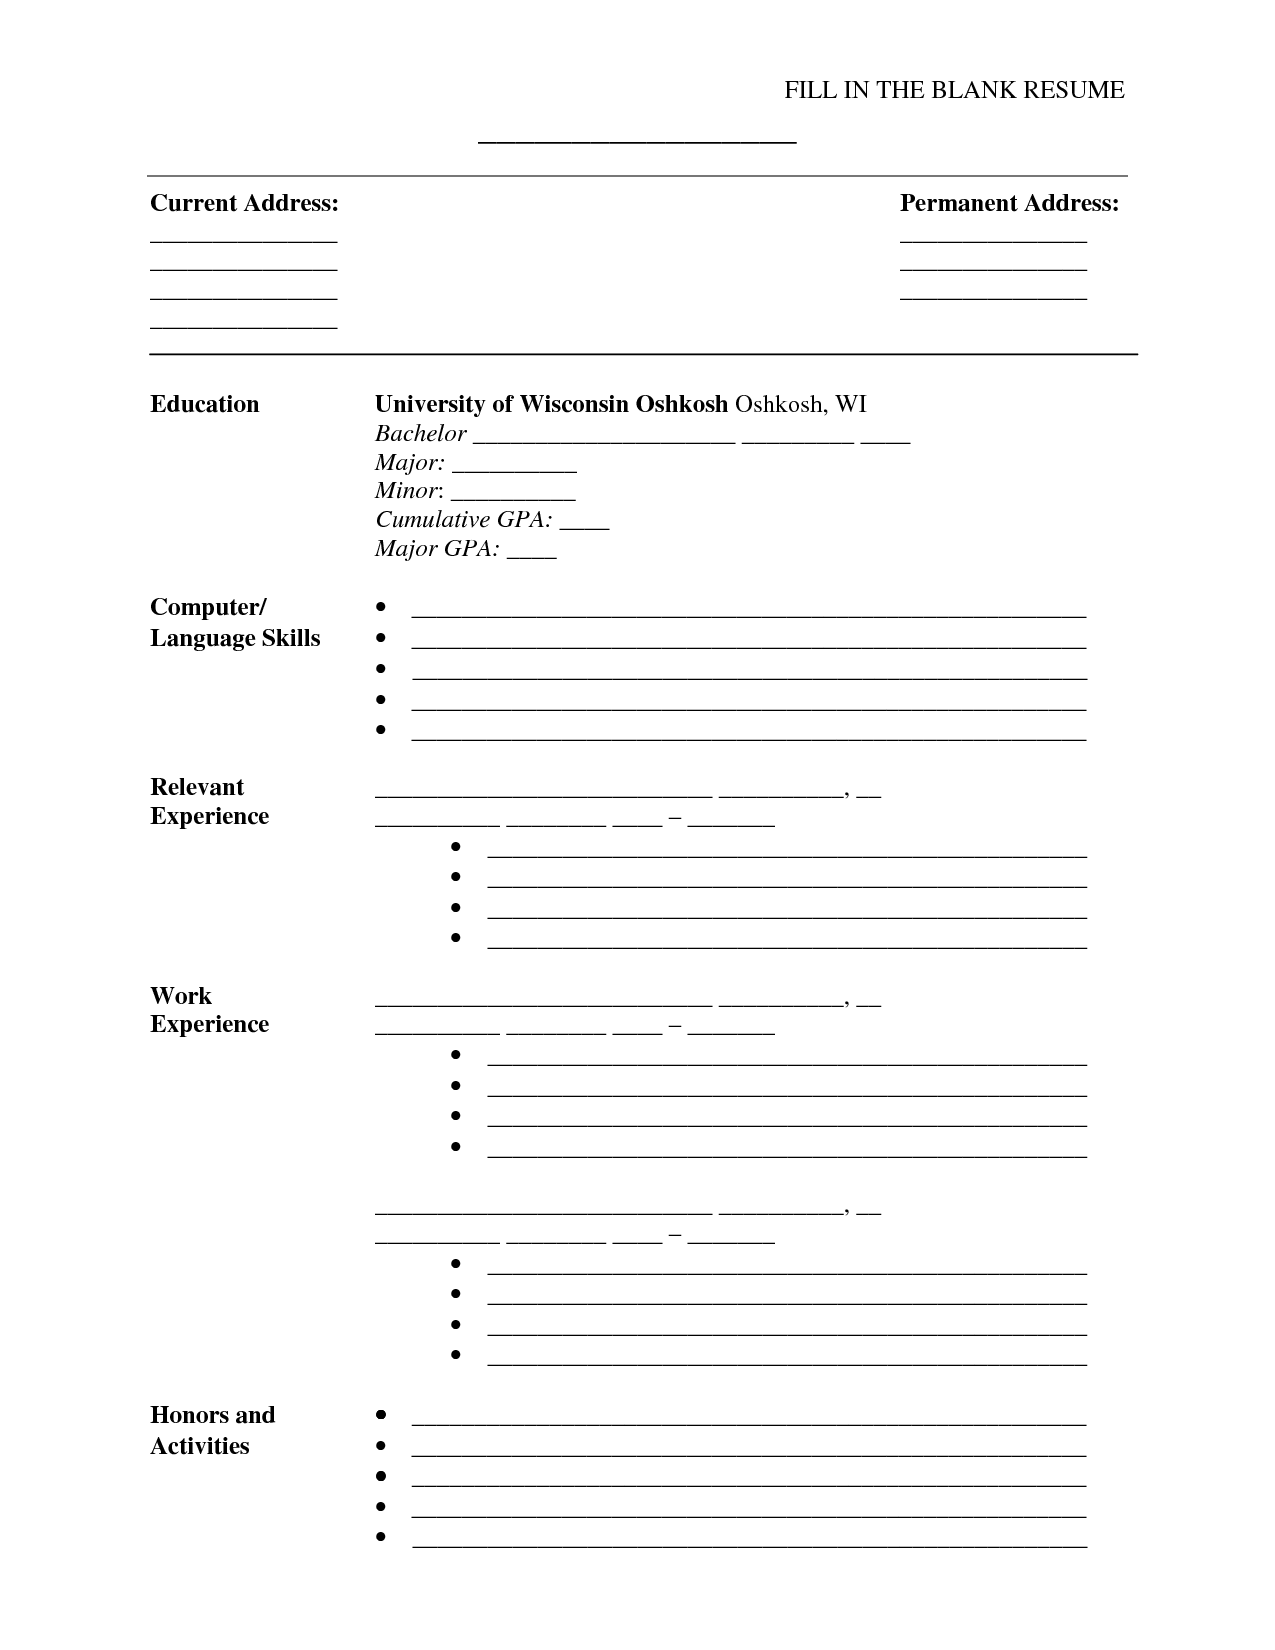 Fill In Resume Template Free